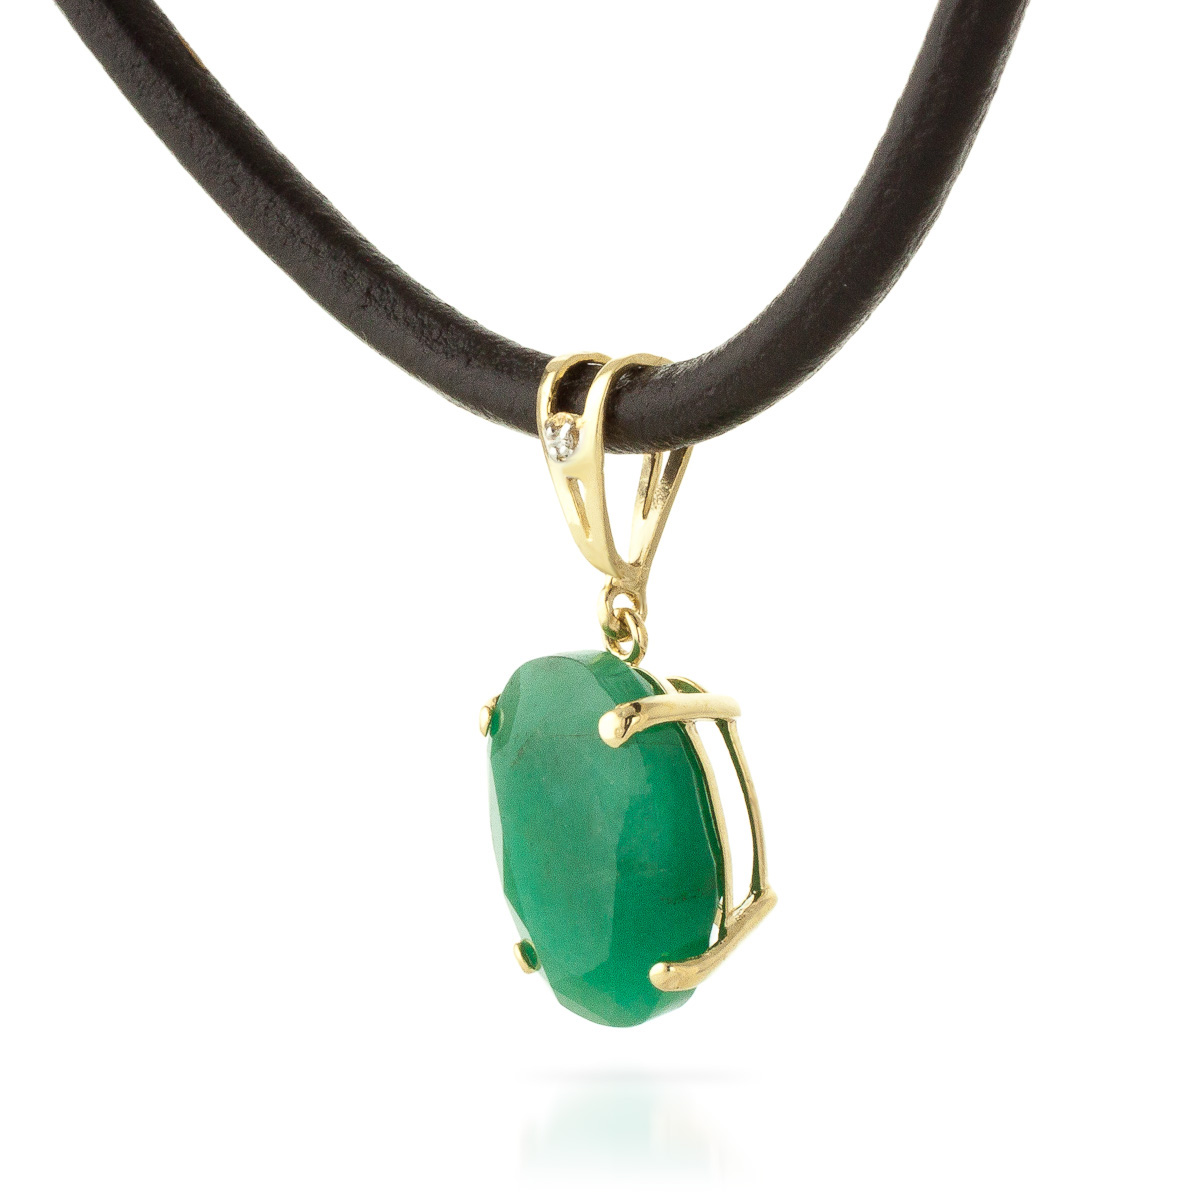 Emerald Leather Pendant Necklace 6.51 ctw in 9ct Gold